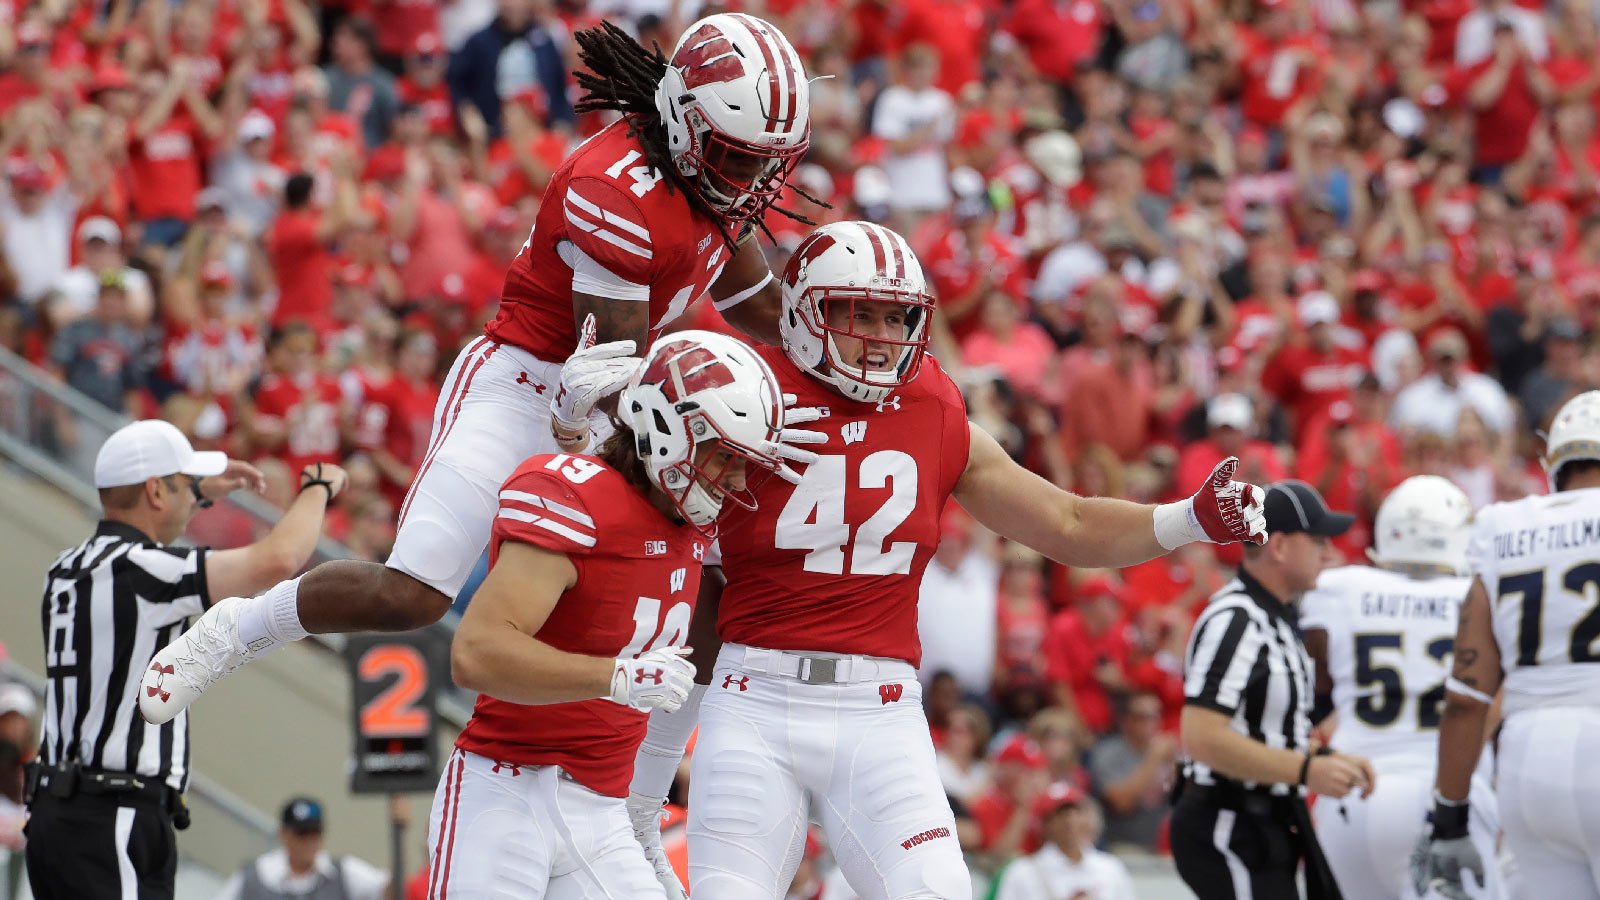 Badgers' defense stifling opponents through four games